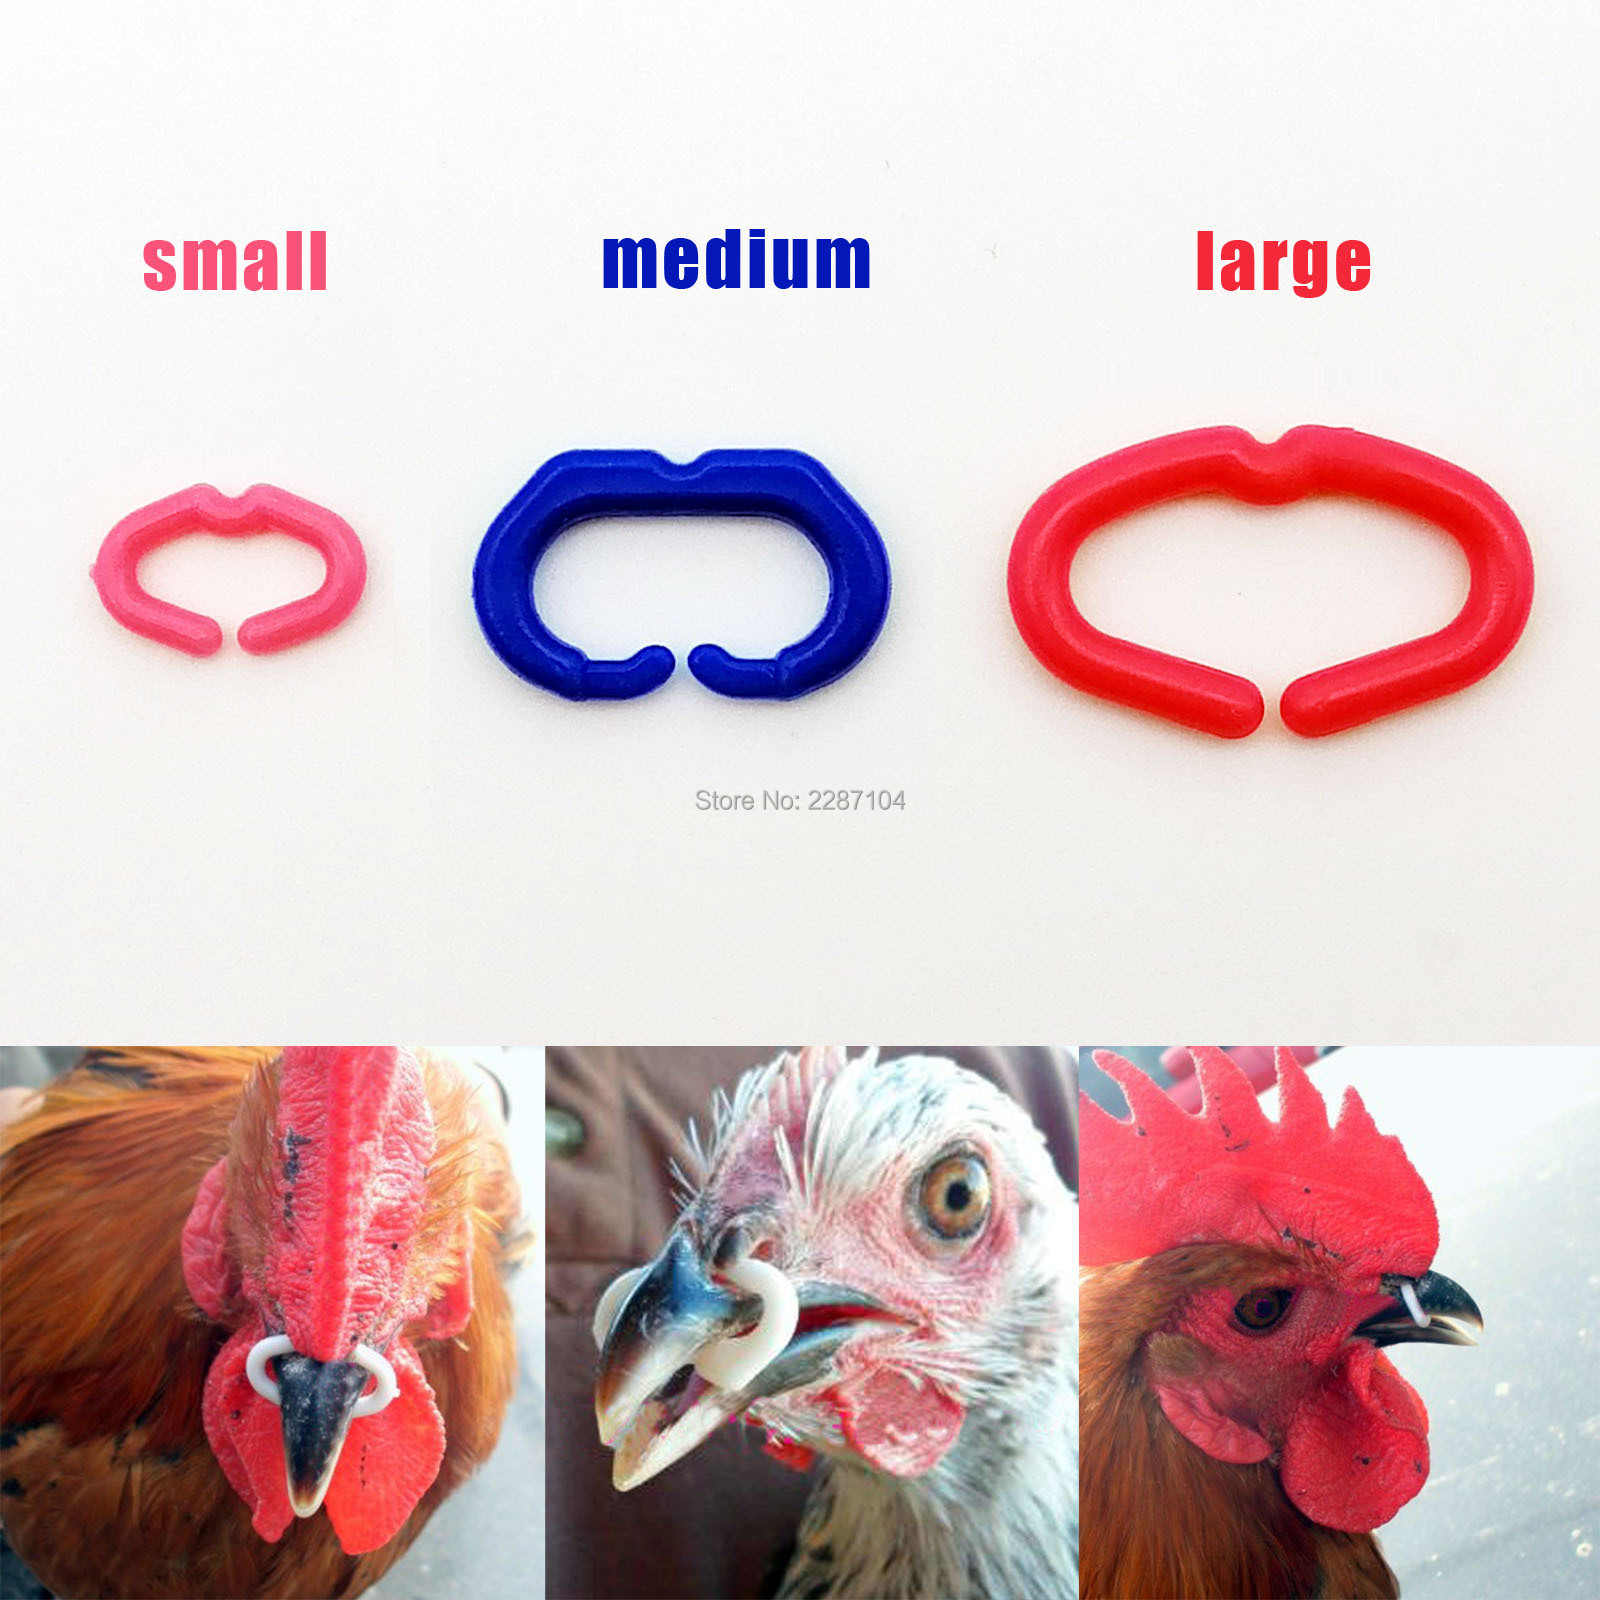 Chicken Glasses Pecking Poultry Farm Eye Protector Anti-Peck Plastic 50Pcs Small